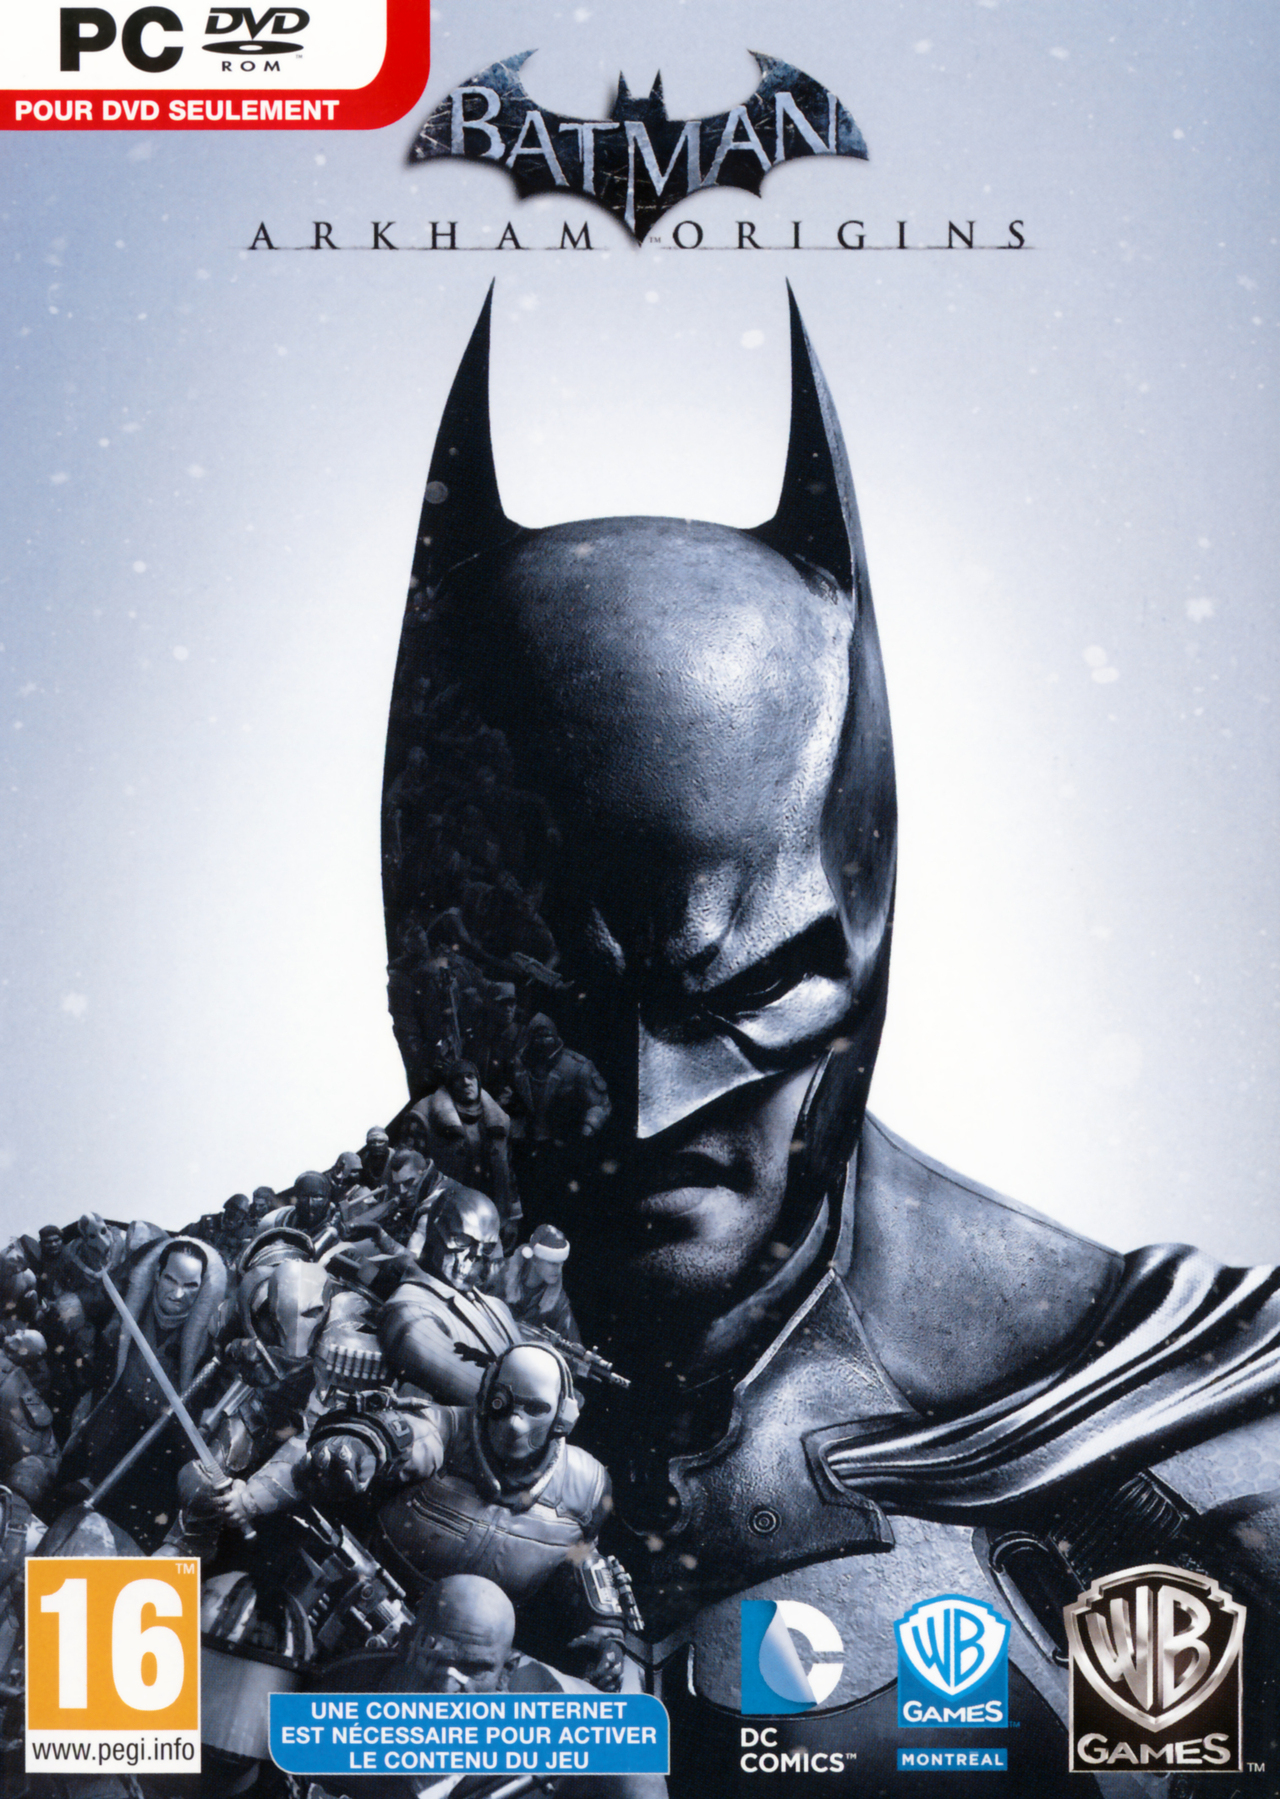 [MULTI] Batman Arkham Origins  [Jeux PC ] (2014)